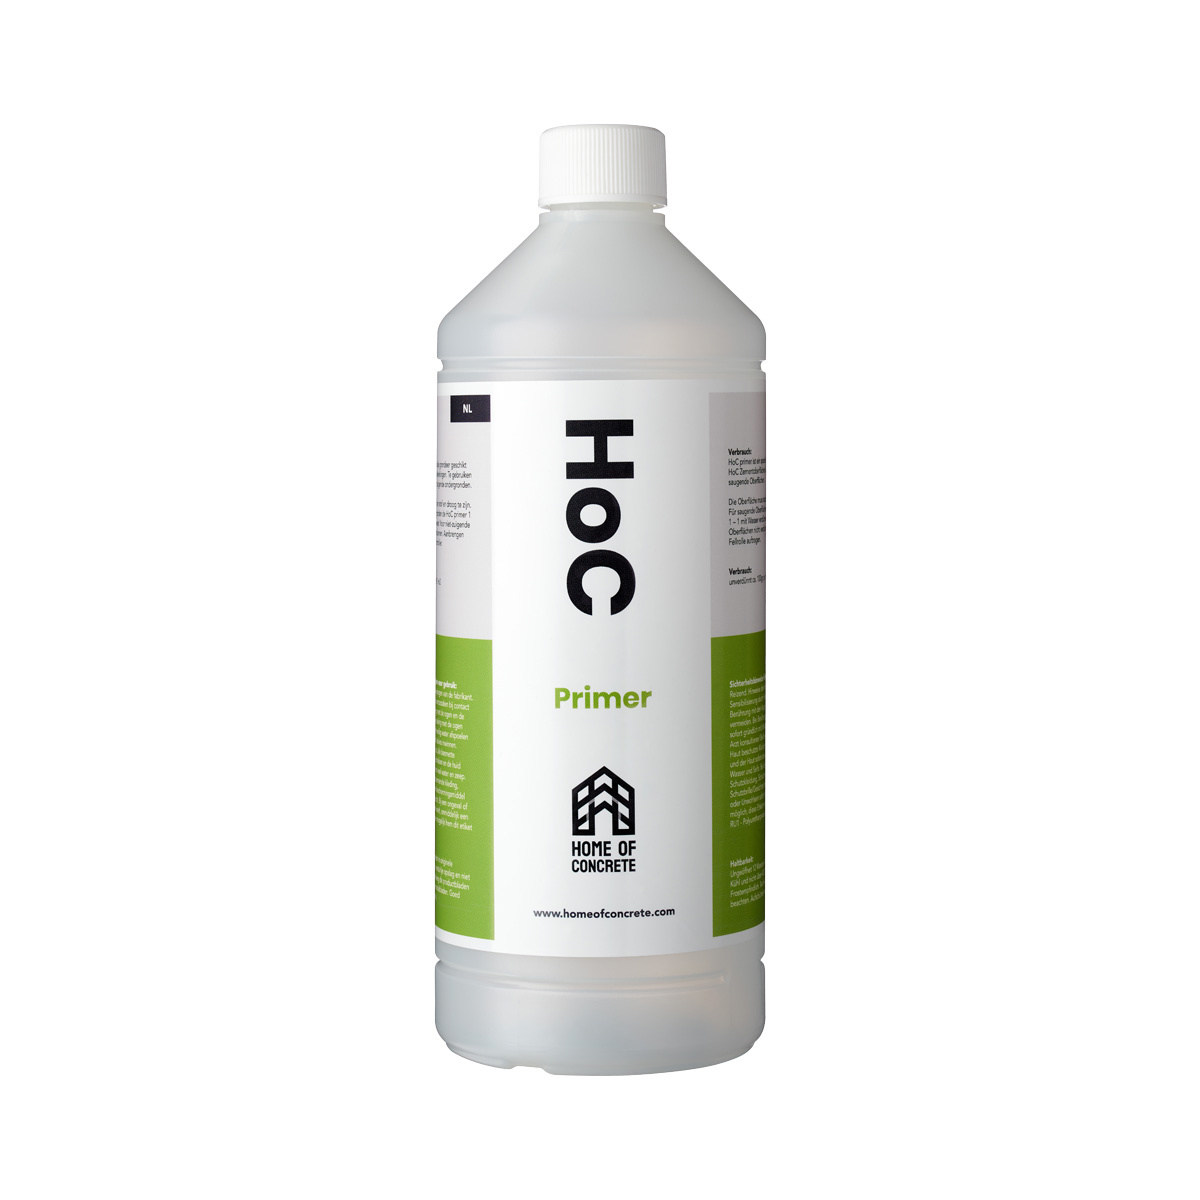 Home of Concrete HoC Primer   Primer suitable for HoC cementary finishes